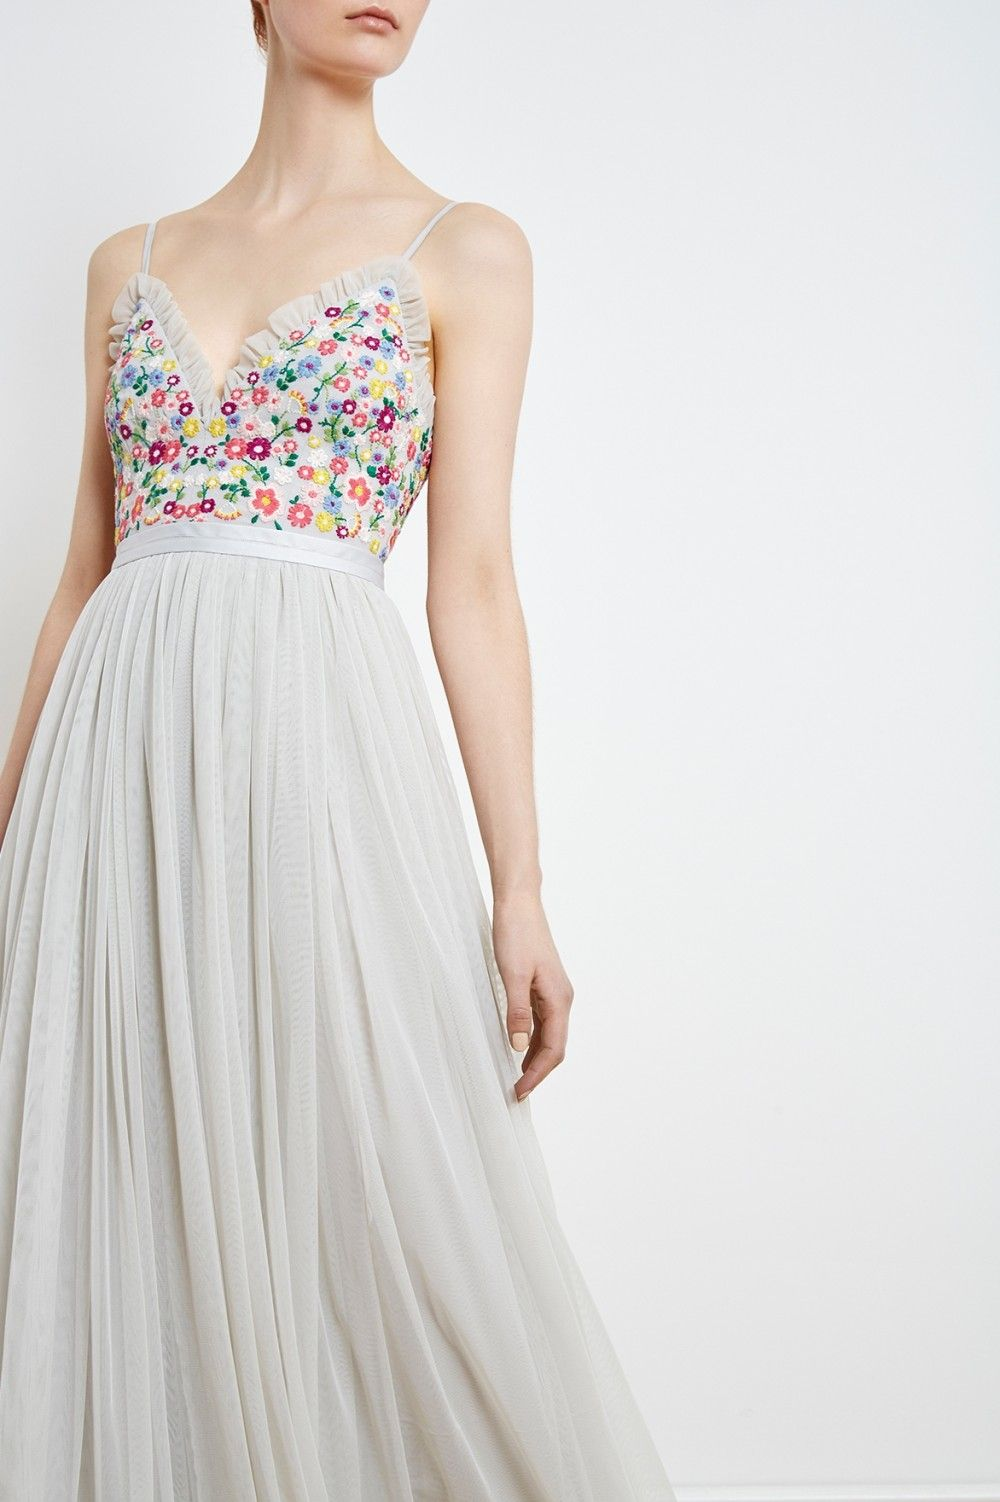 The Lazy Daisy Bodice Maxi Dress In Bleached Blue Consists Of A